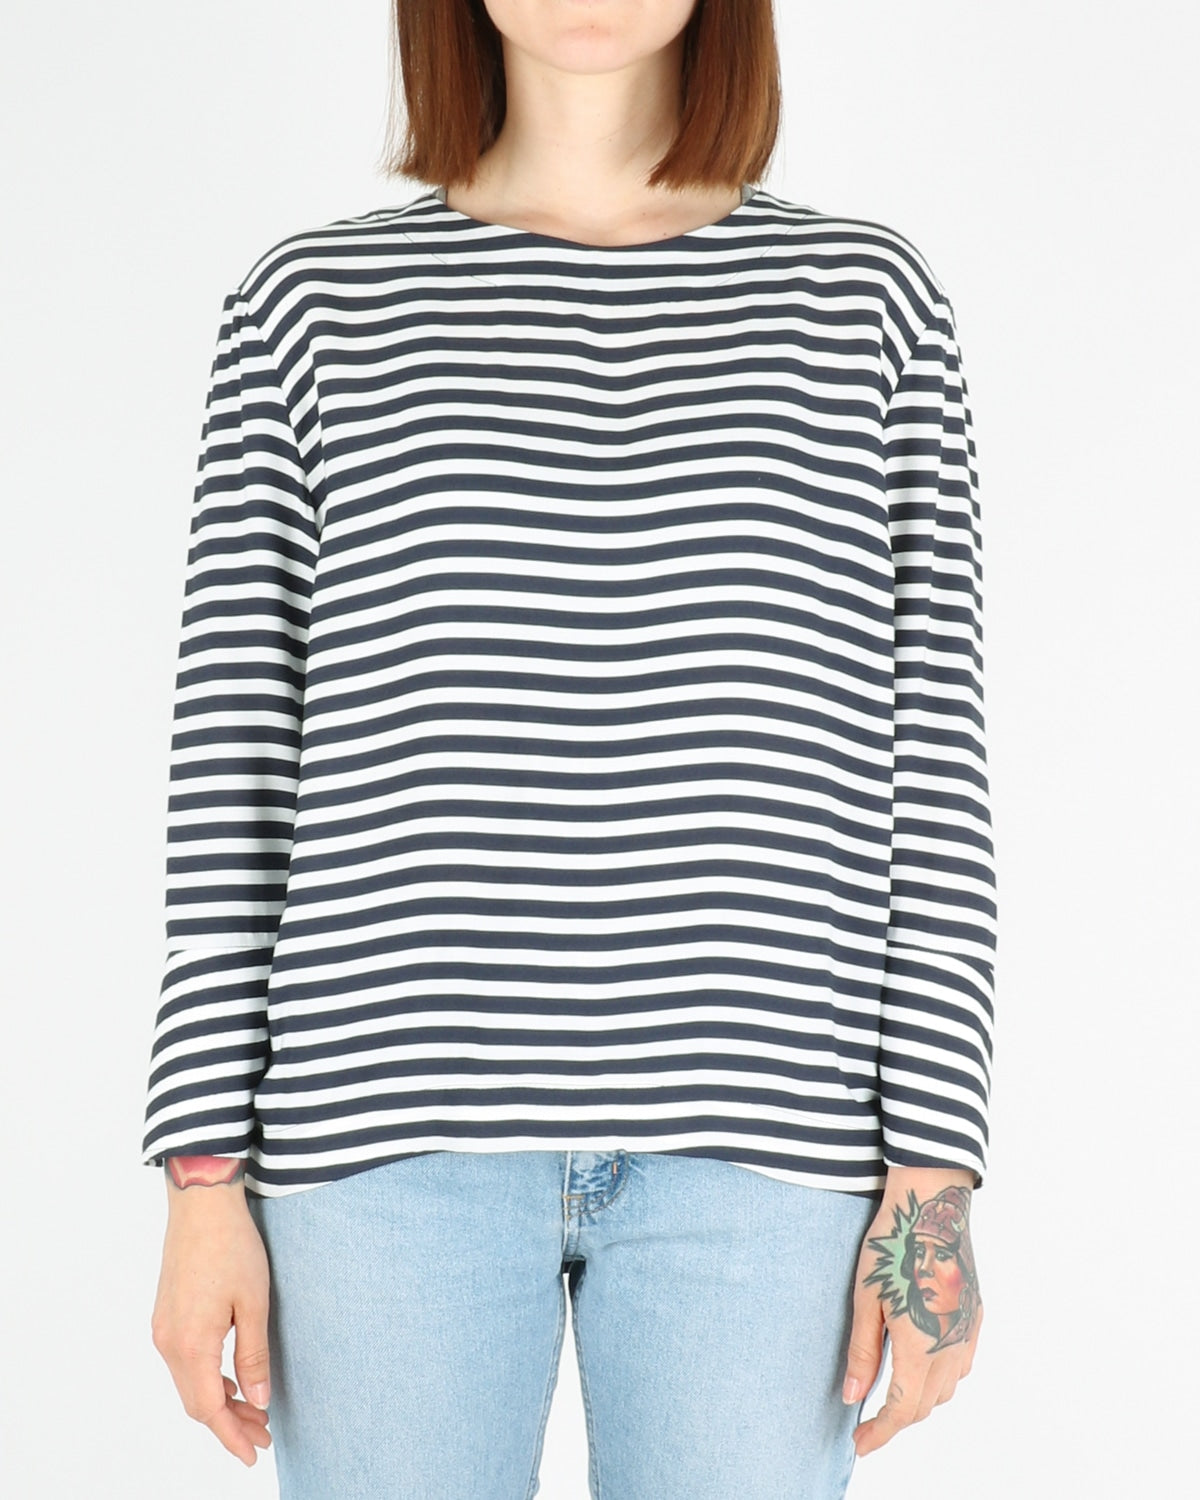 libertine libertine_unknown top_navy white_view_1_3